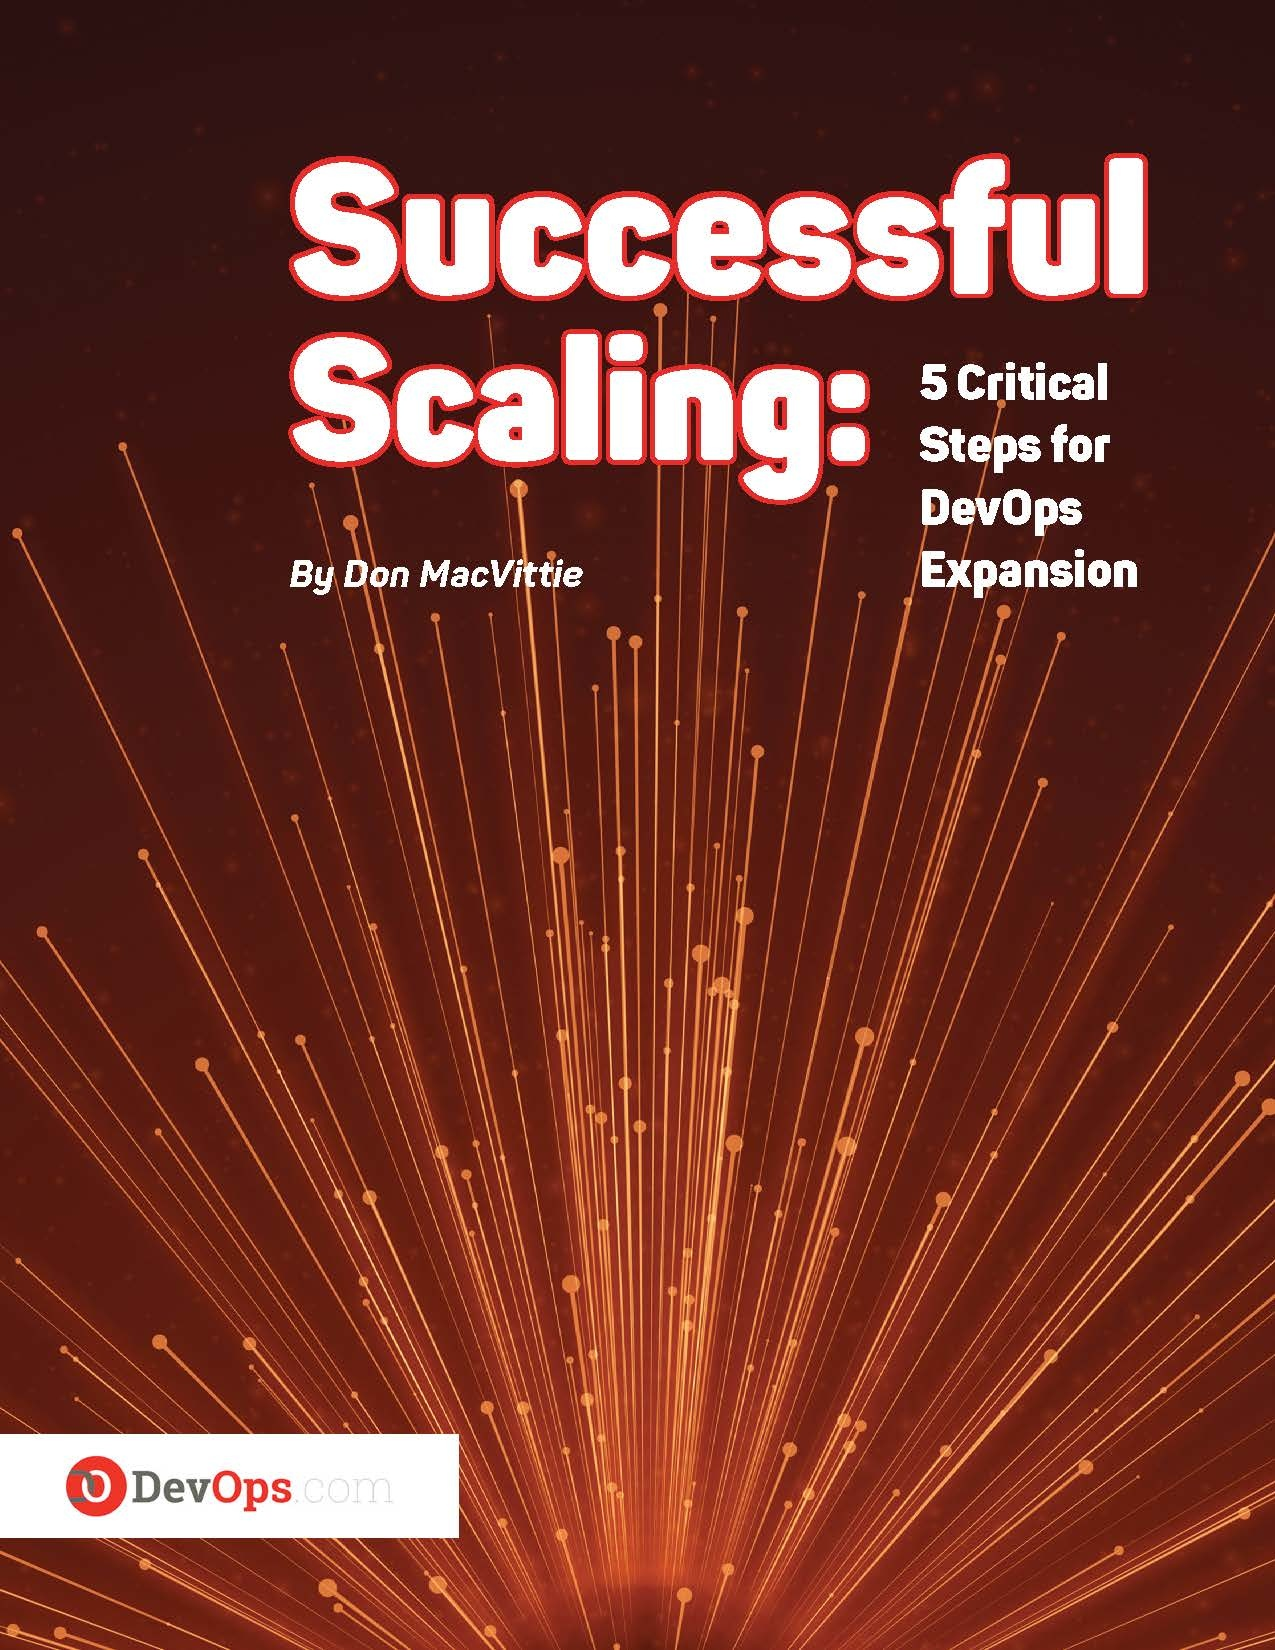 Successful Scaling: 5 Critical Steps for DevOps Expansion